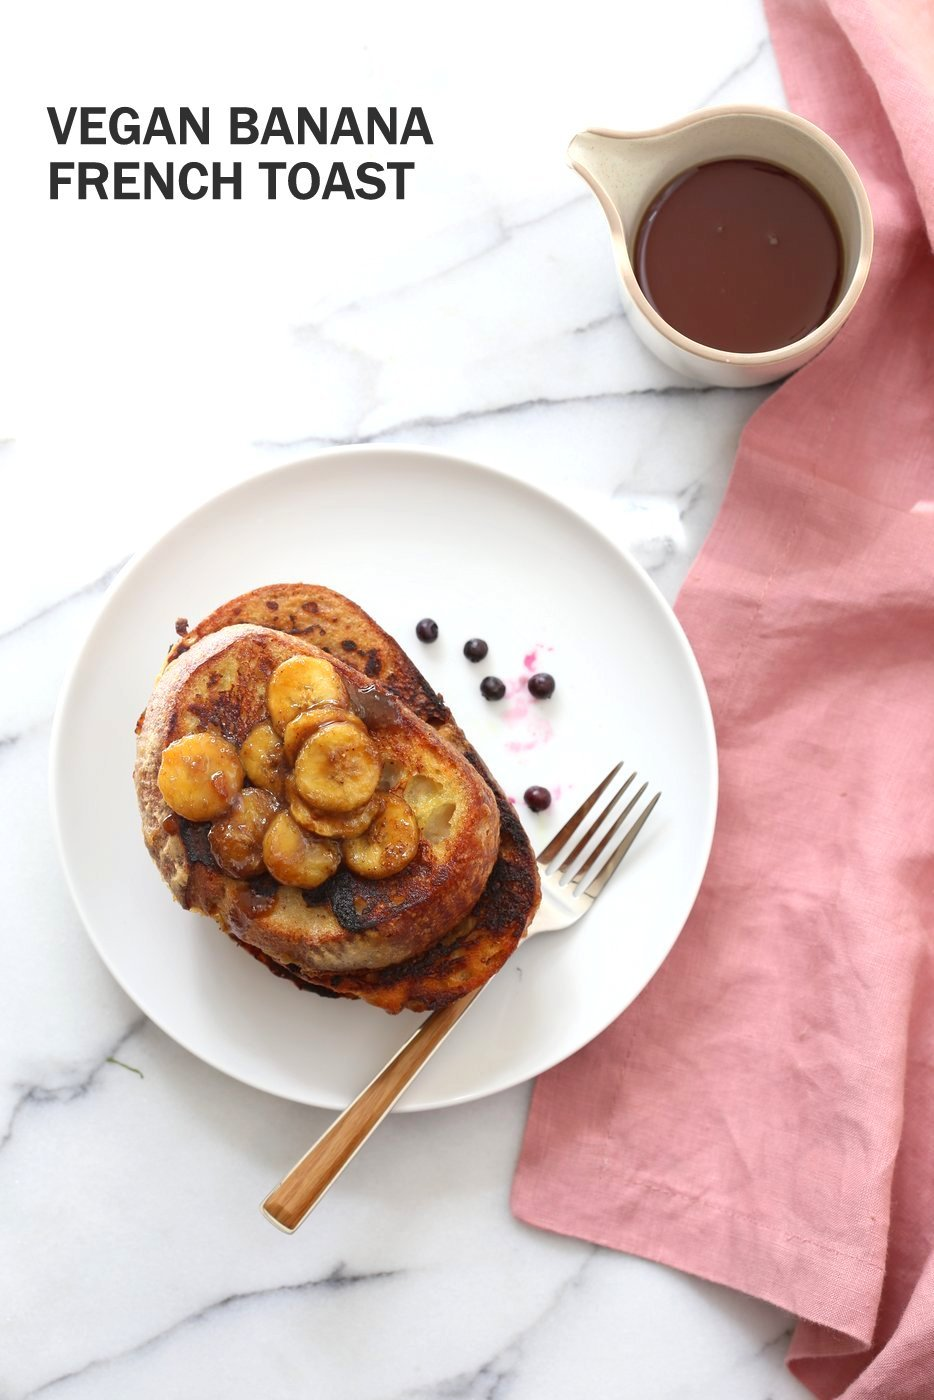 Vegan Banana French Toast with Caramelized Bananas - Vegan ...